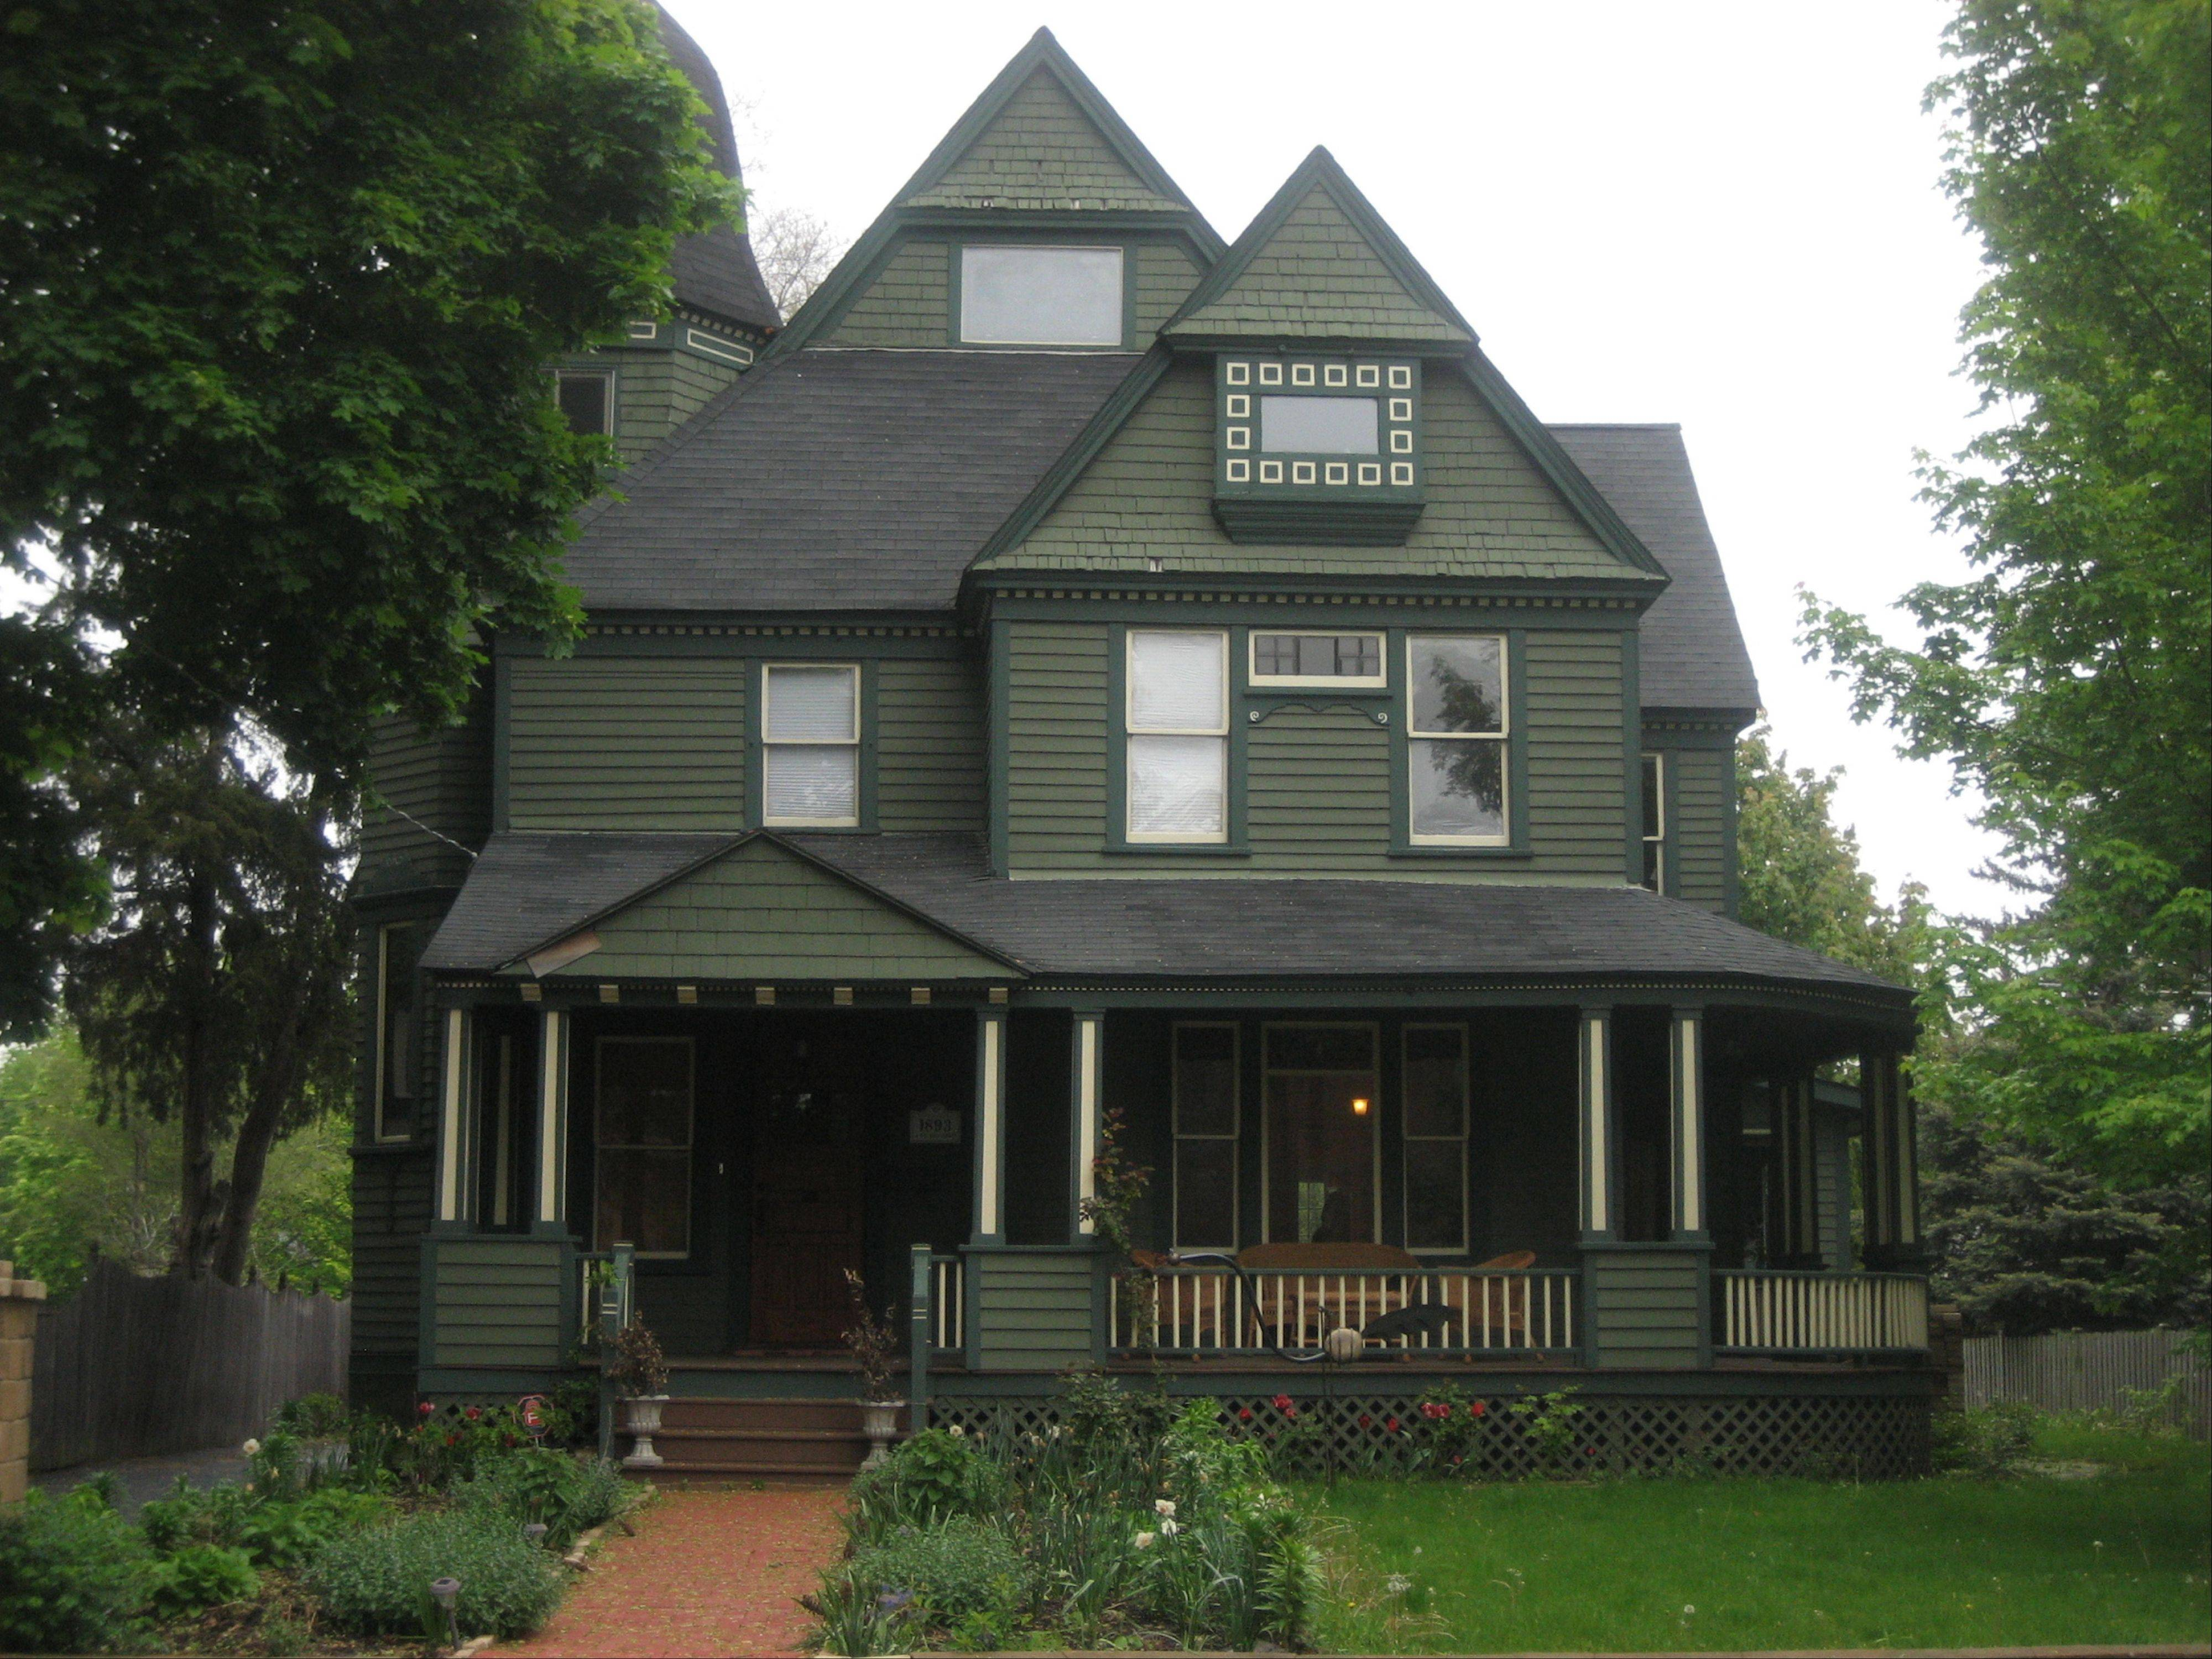 The Queen Anne-style home at 331 Griswold St., built in 1893, was part of the Gifford Park Association's 31st annual Historic Elgin House tour Saturday.